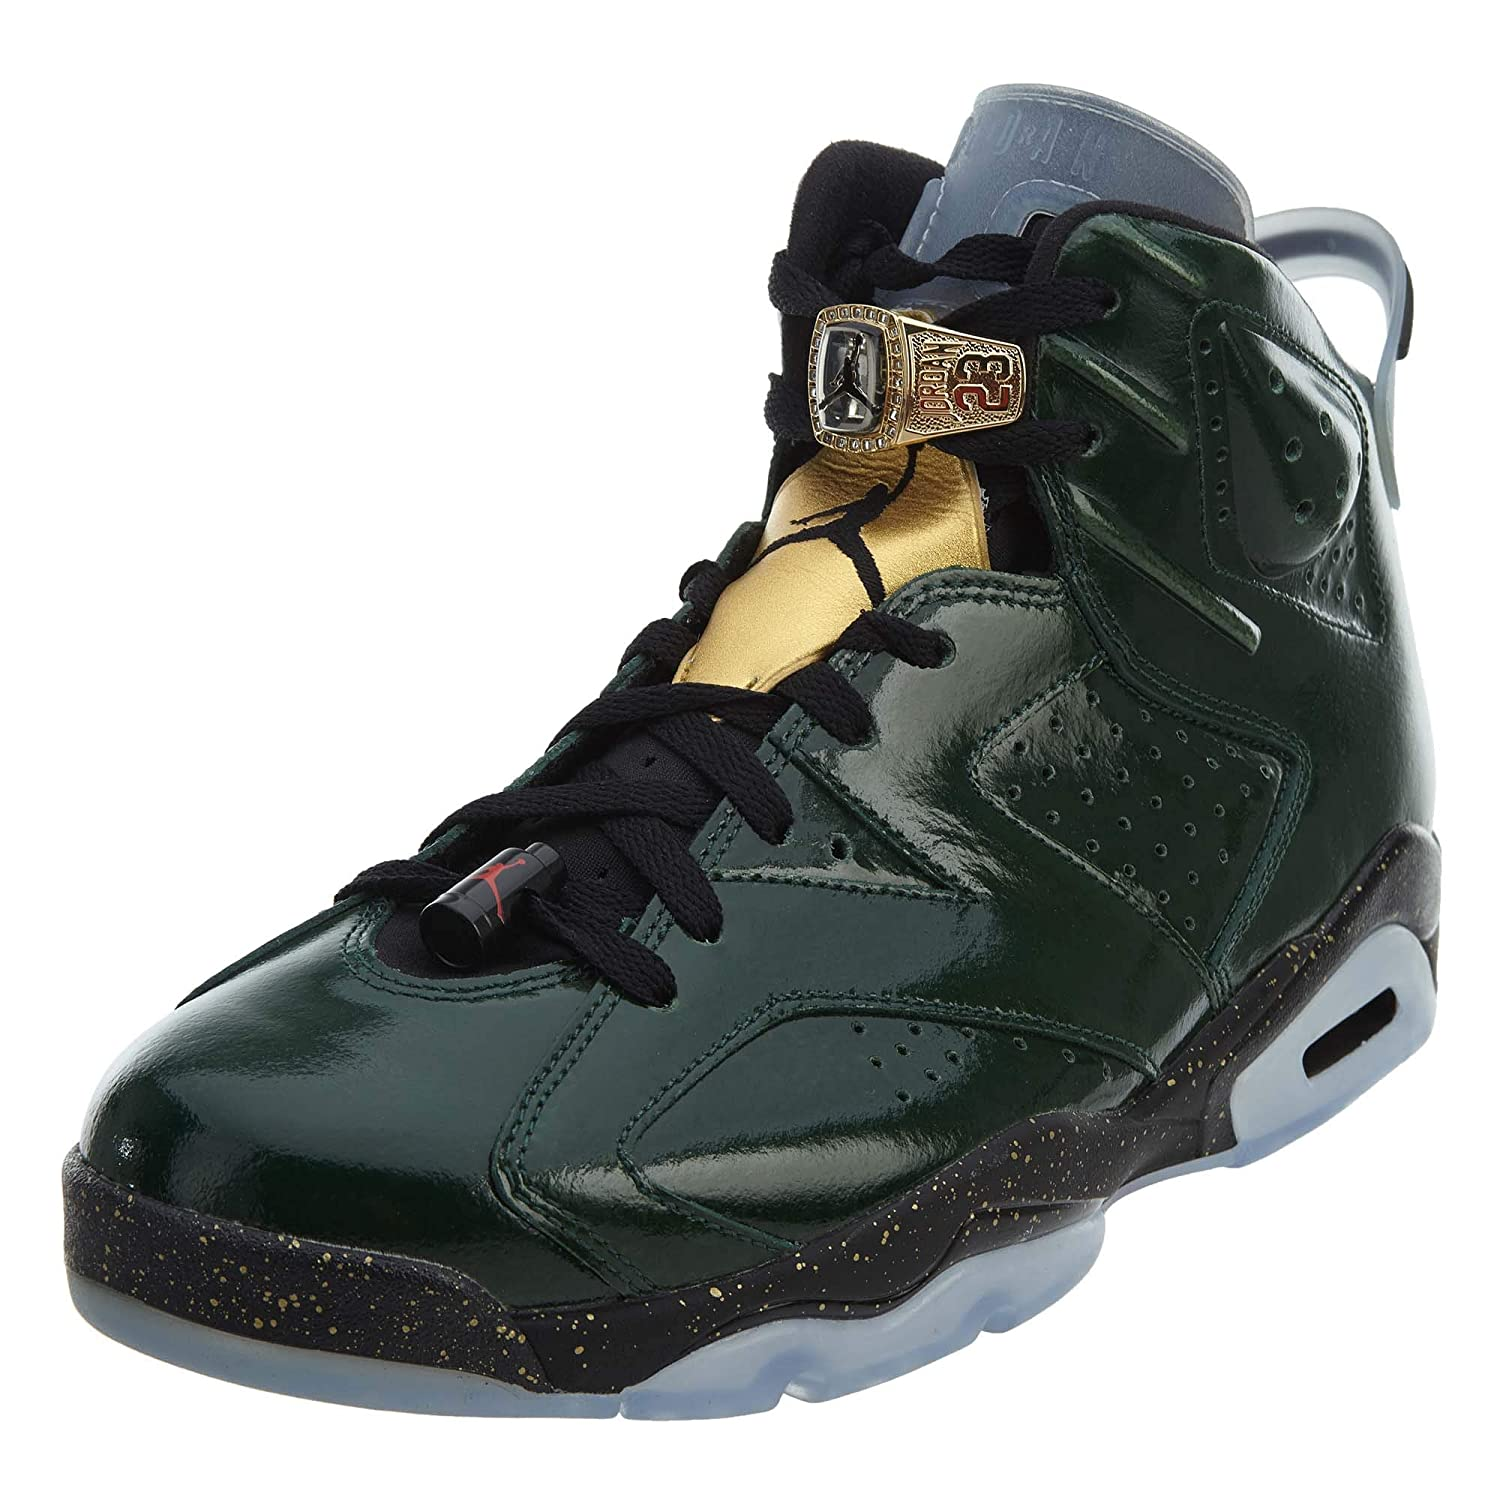 AIR JORDAN - エアジョーダン - AIR JORDAN 6 RETRO 'CHAMPAGNE' - 384664-350 (メンズ) 12  B00P9K1EPG